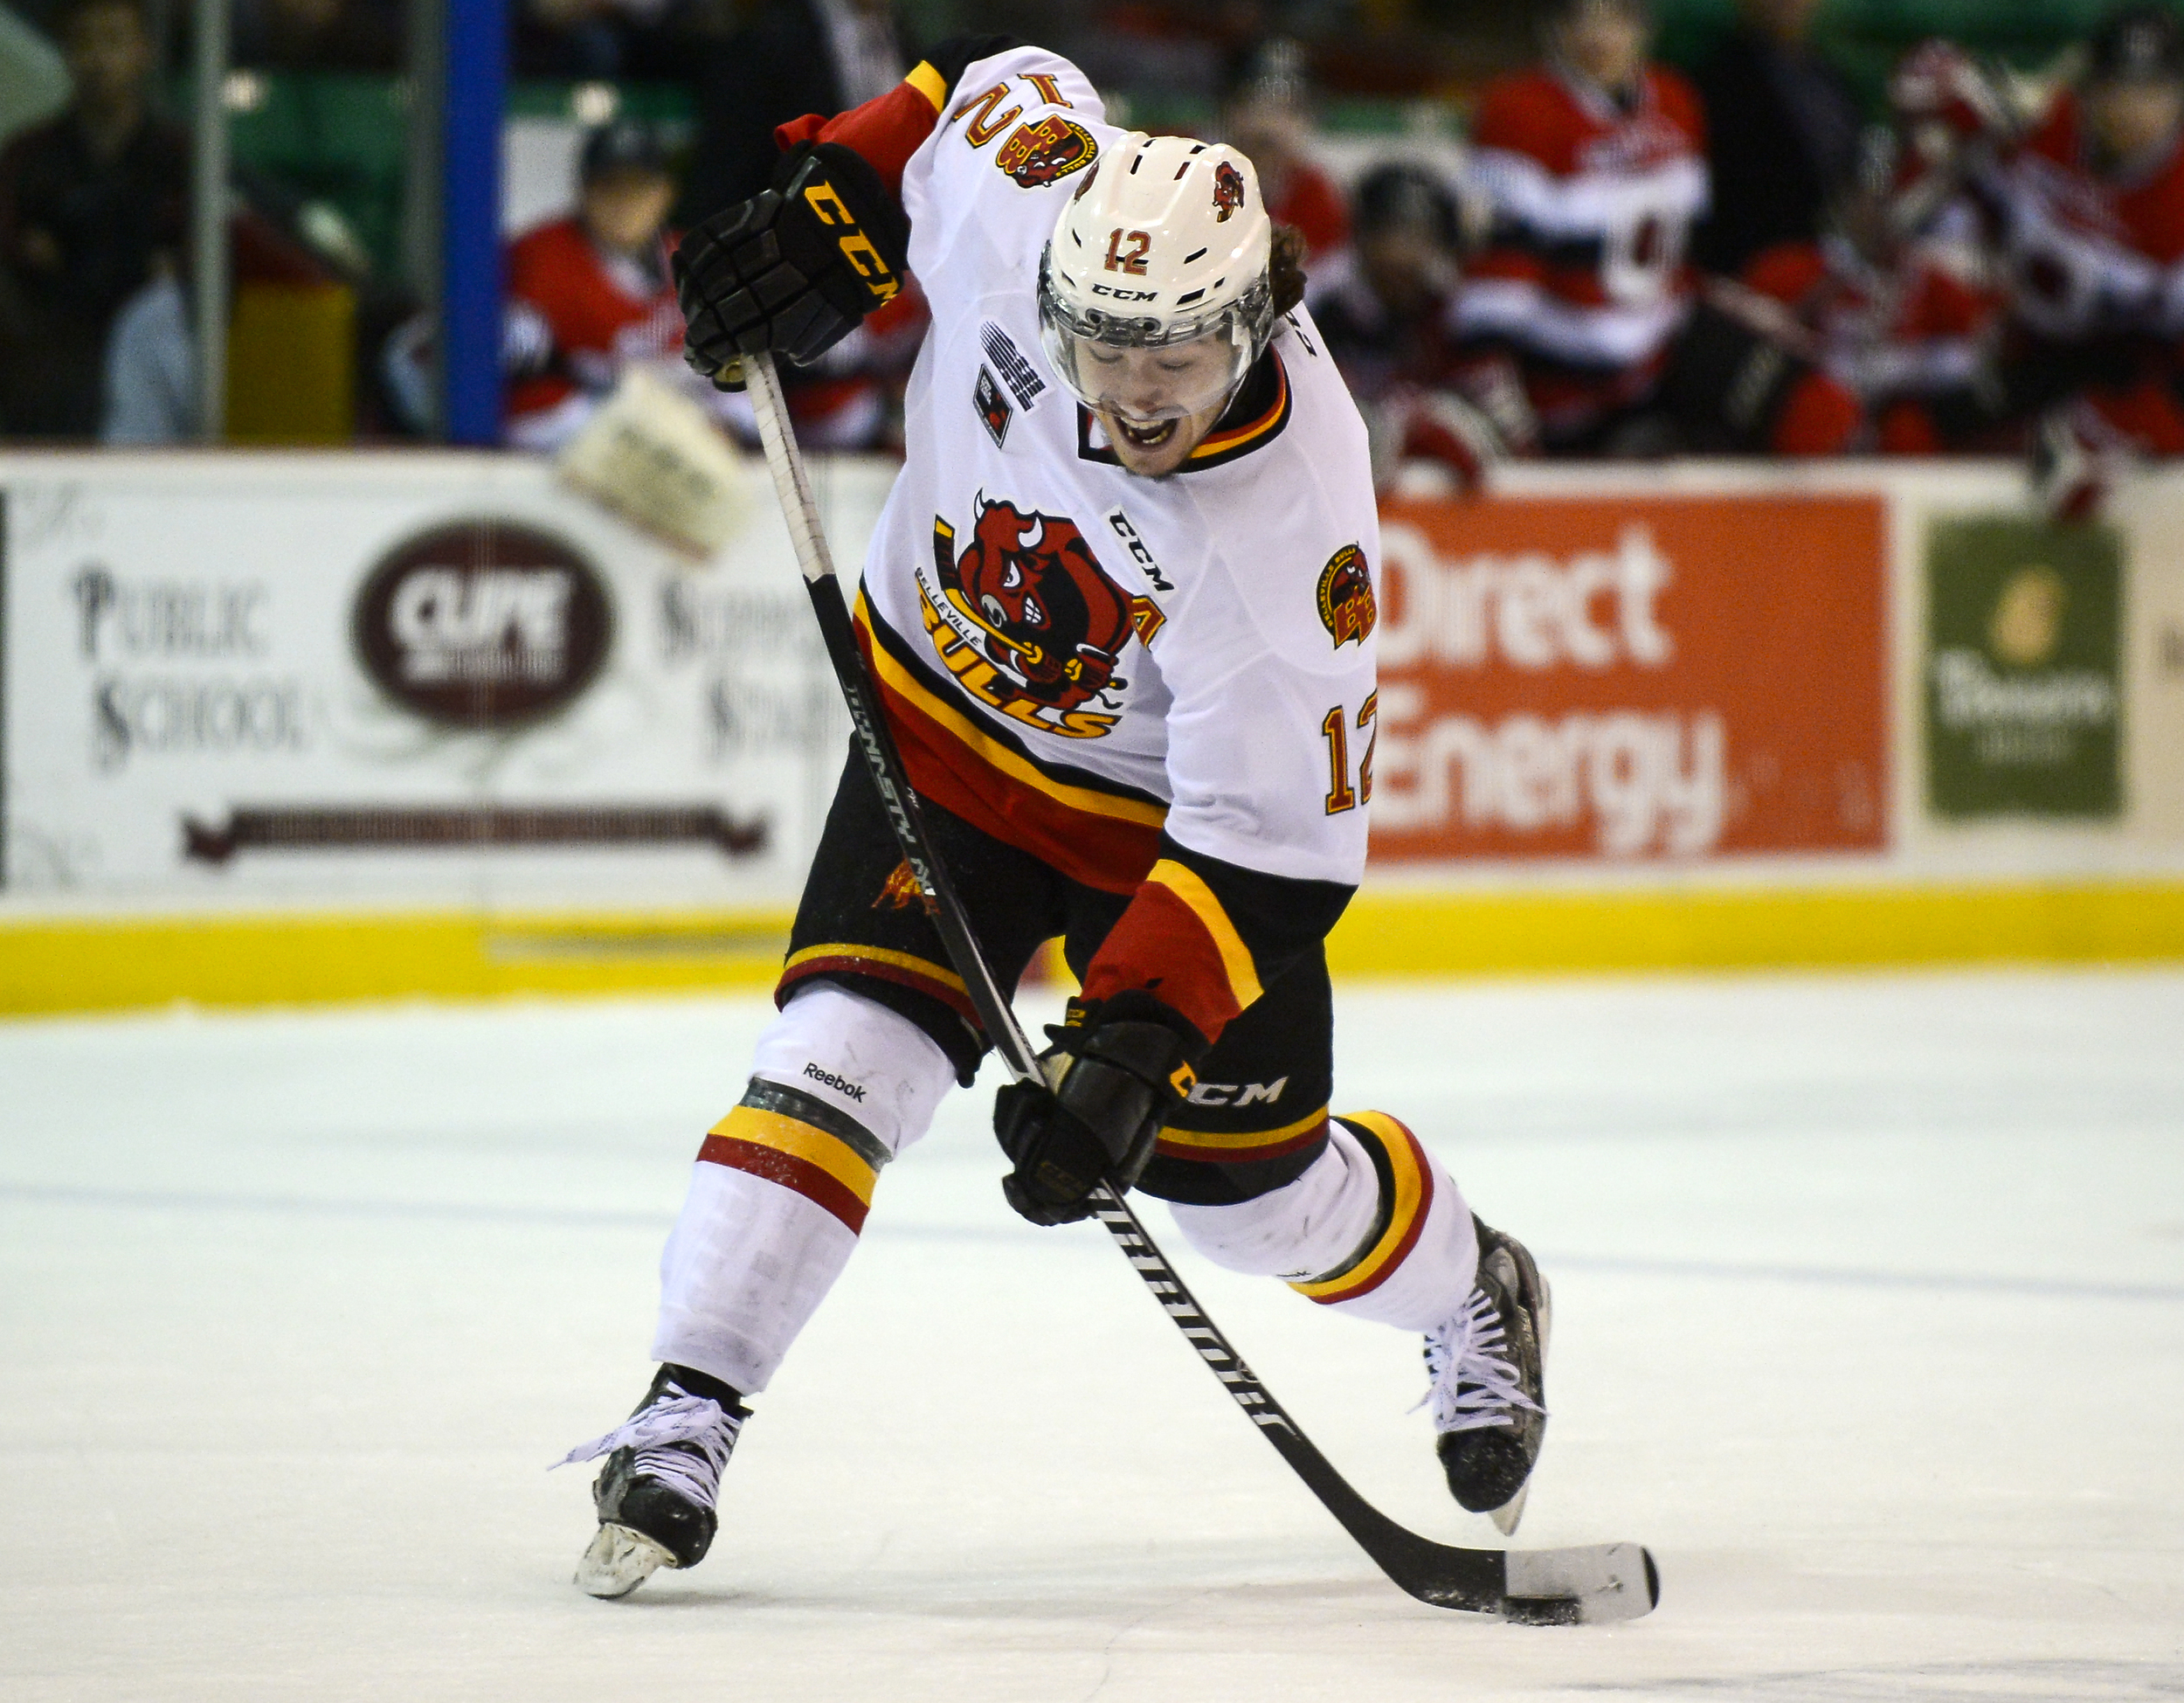 Belleville Bulls forward Remi Elie blasts a shot during first period play against the Ottawa 67s at Yardmen Arena in Belleville, Ont. on December 3, 2014. Bulls beat the 67s 5-4.